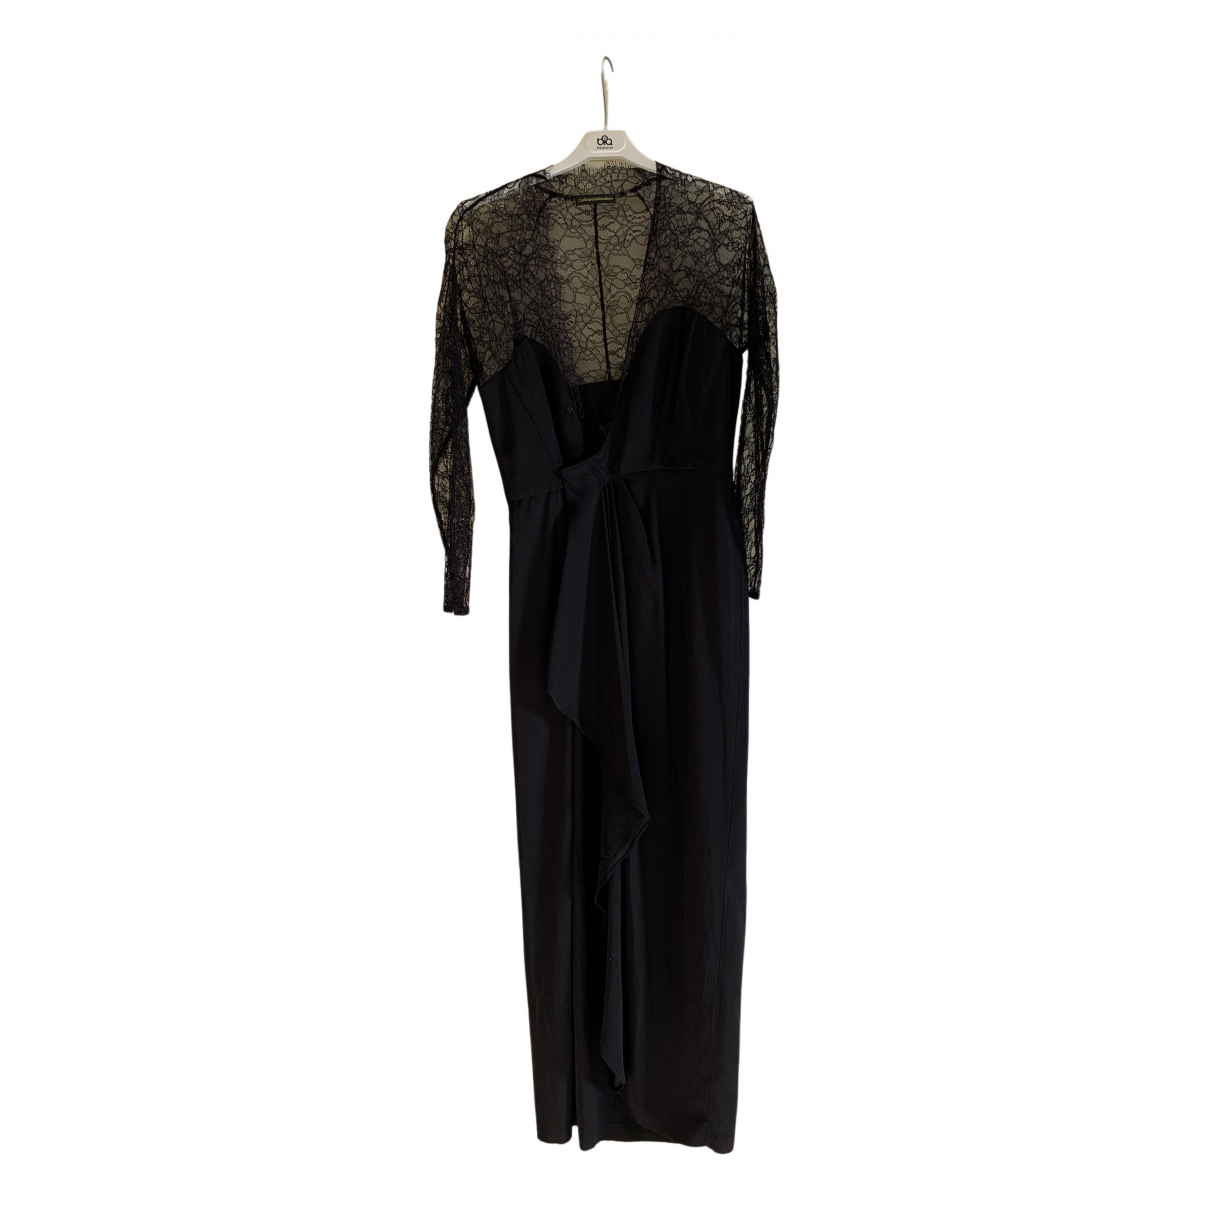 Catherine Malandrino N Black Lace dress for Women 38 FR